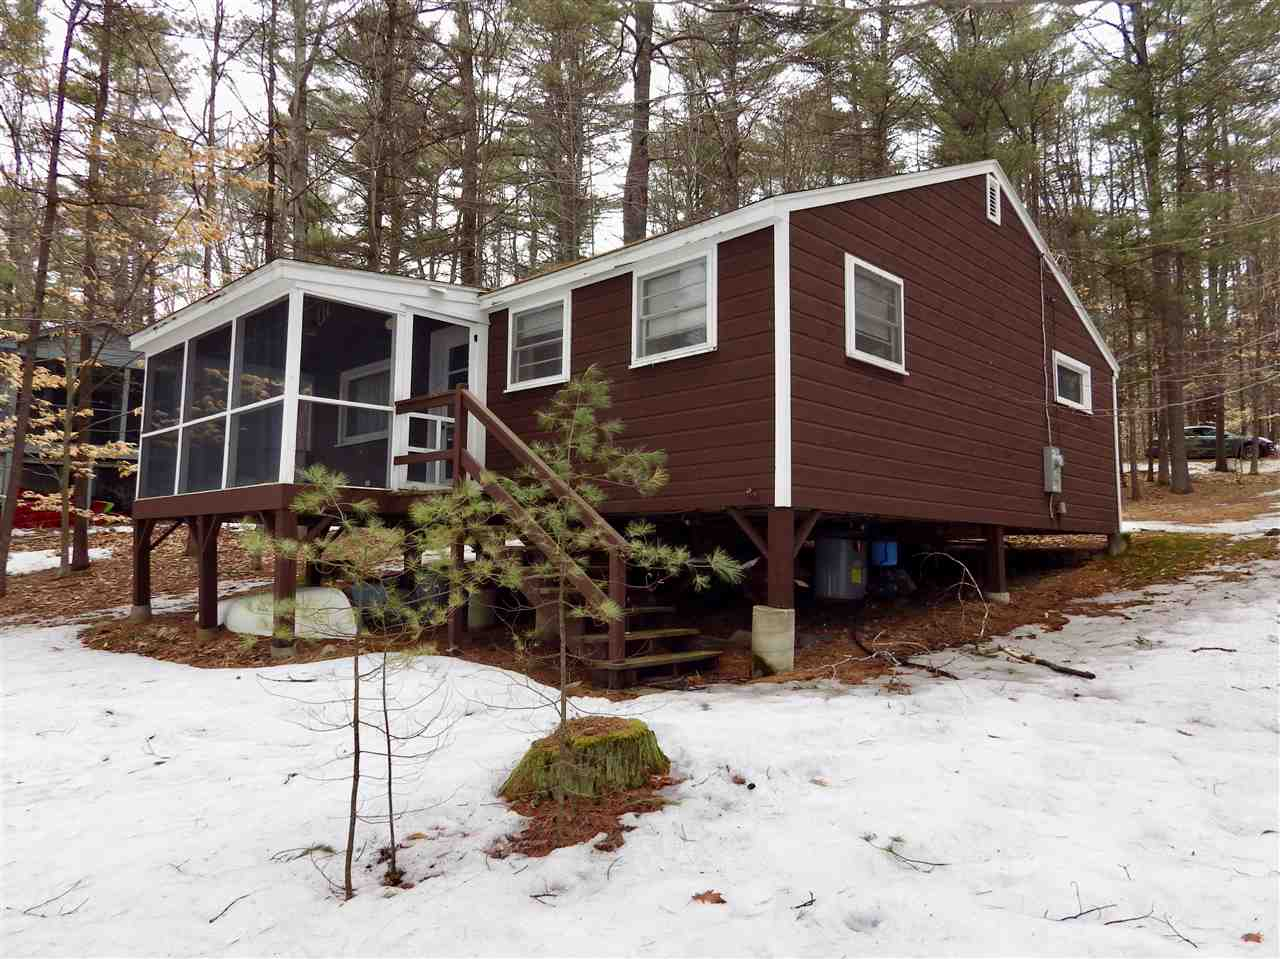 MLS 4743196: 220 McManus Road, Wolfeboro NH